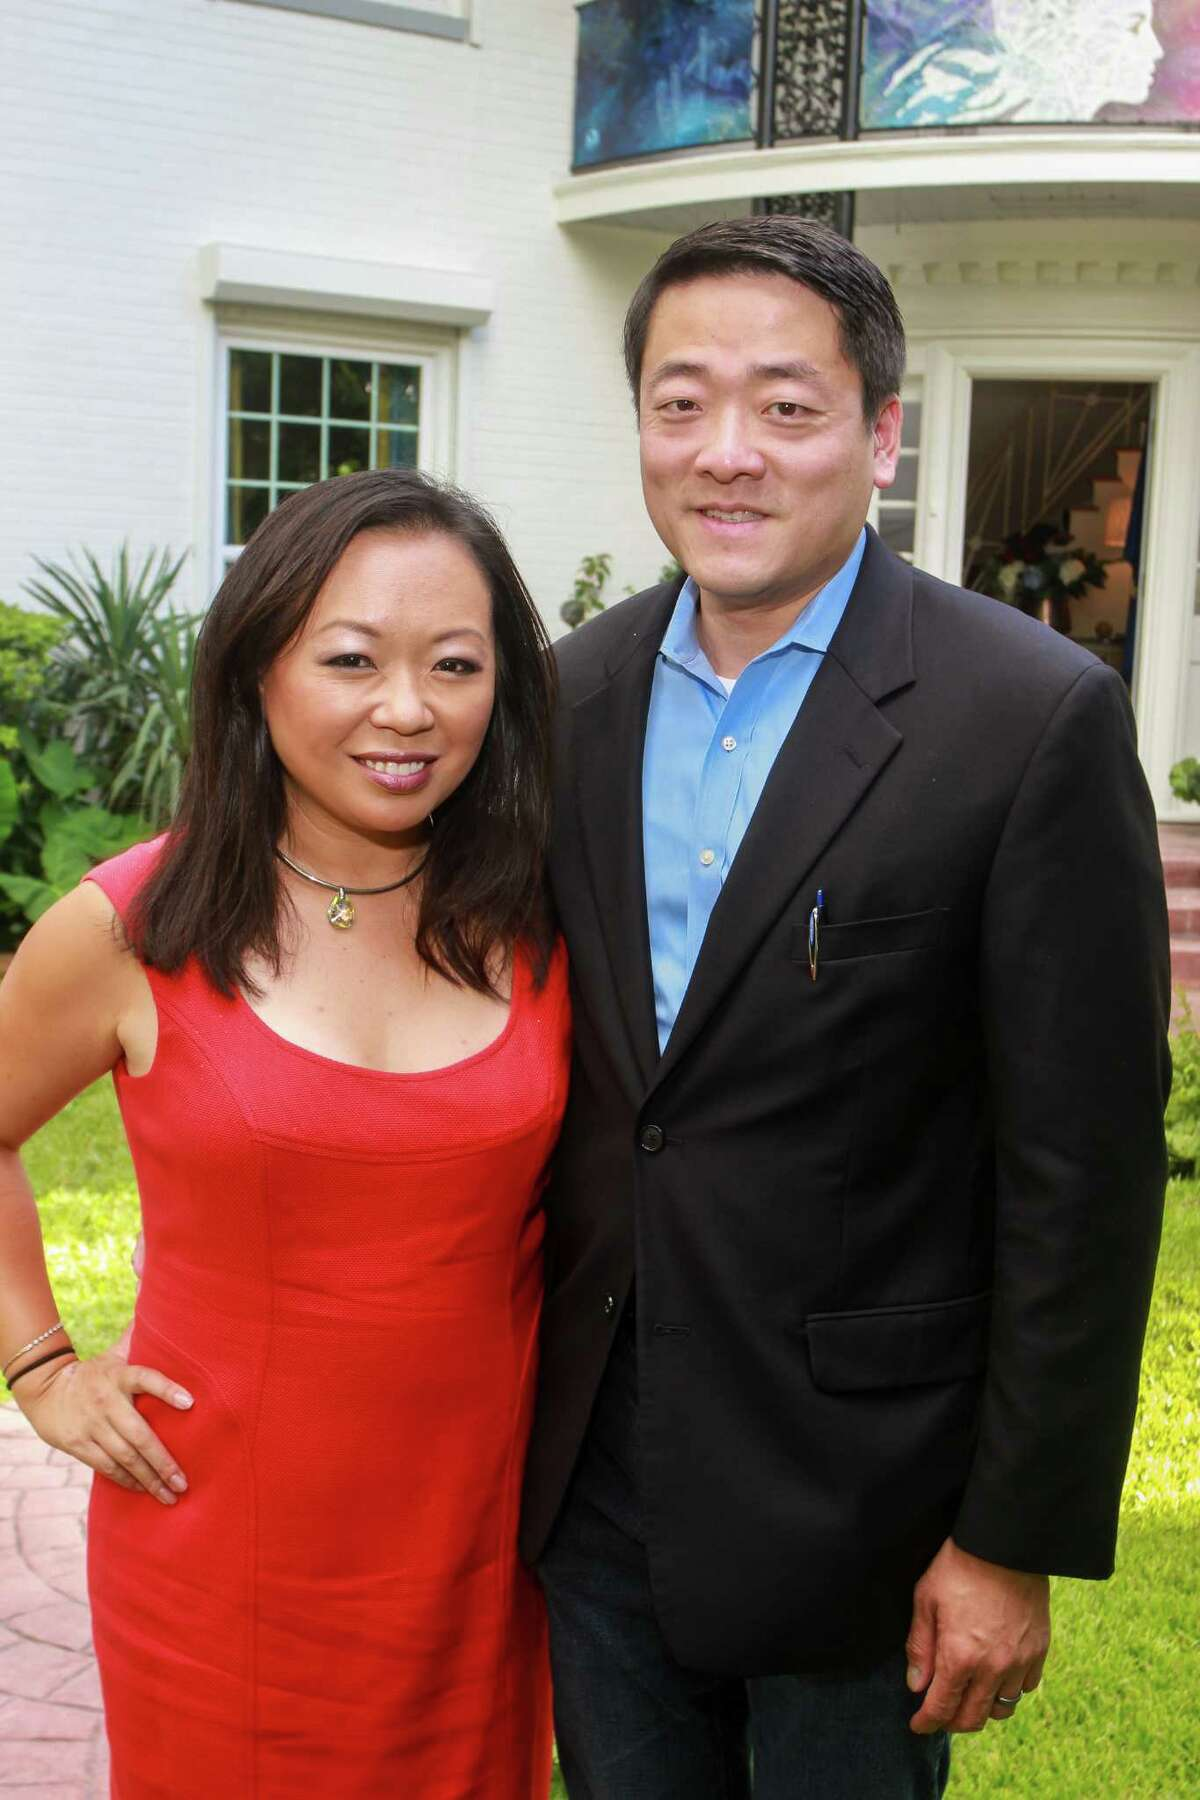 Miya Shay and Gene Wu at the Bastille Day cocktail reception celebrating the French Republic's National Day.